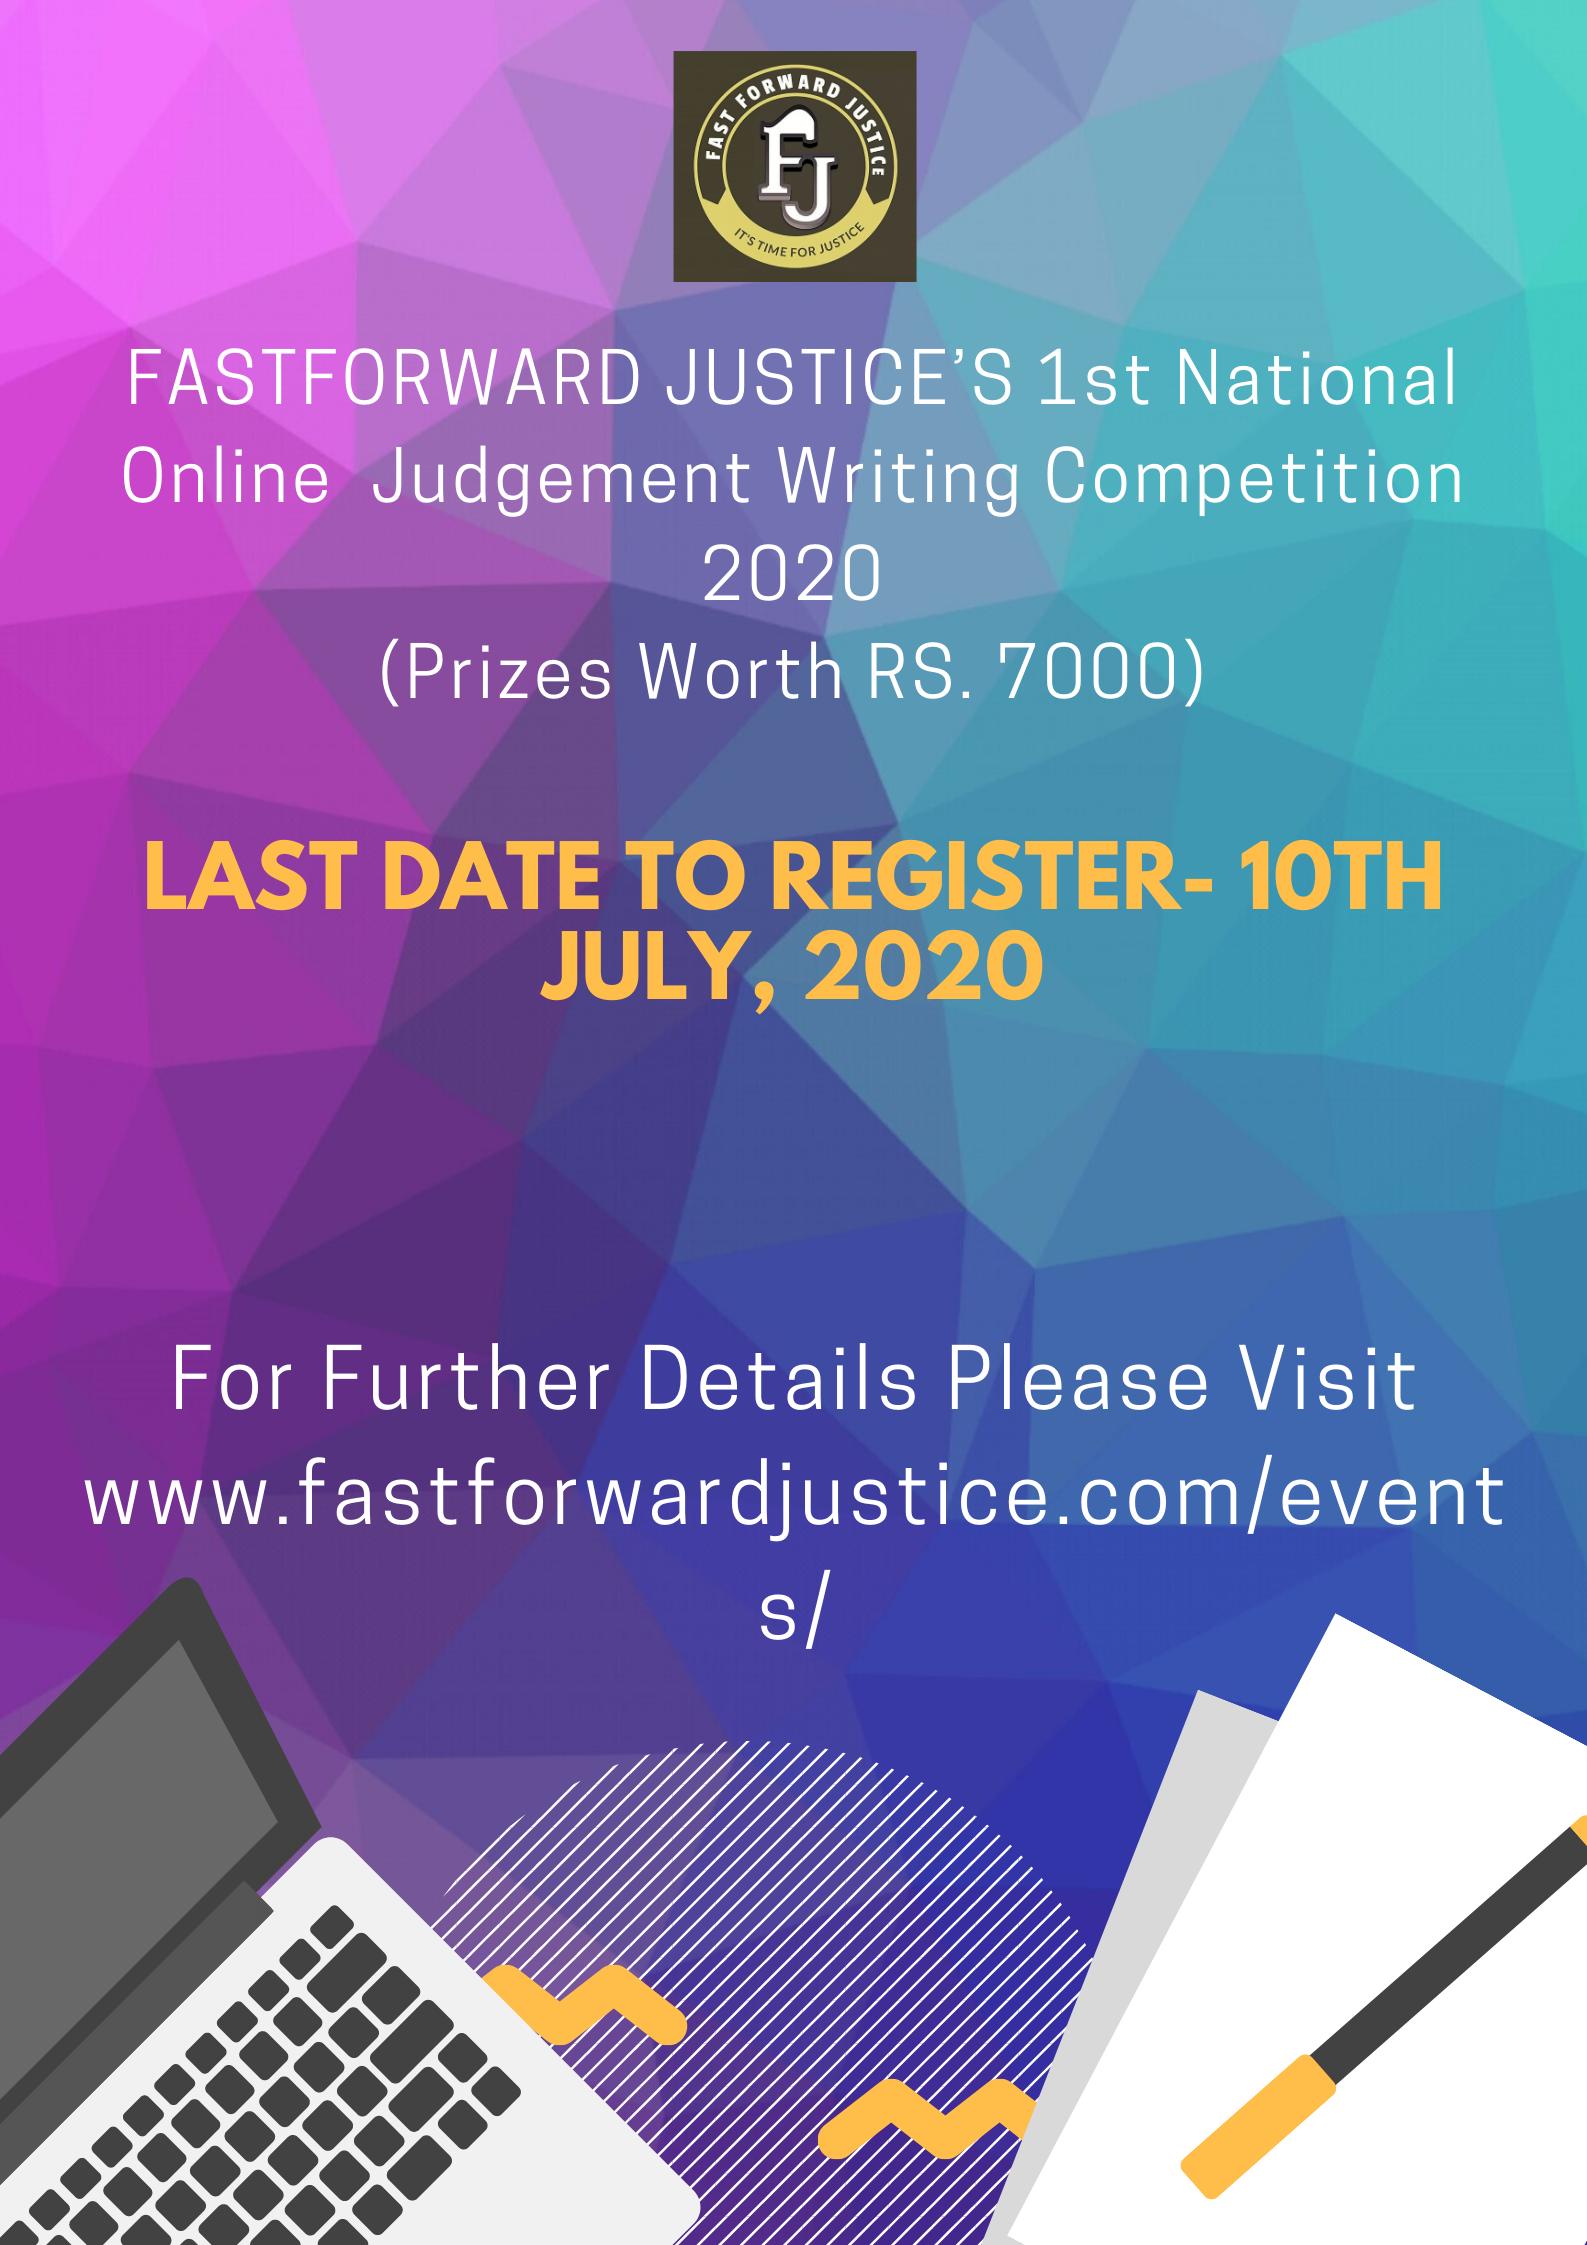 FastForward Justice's Judgment Writing Competition